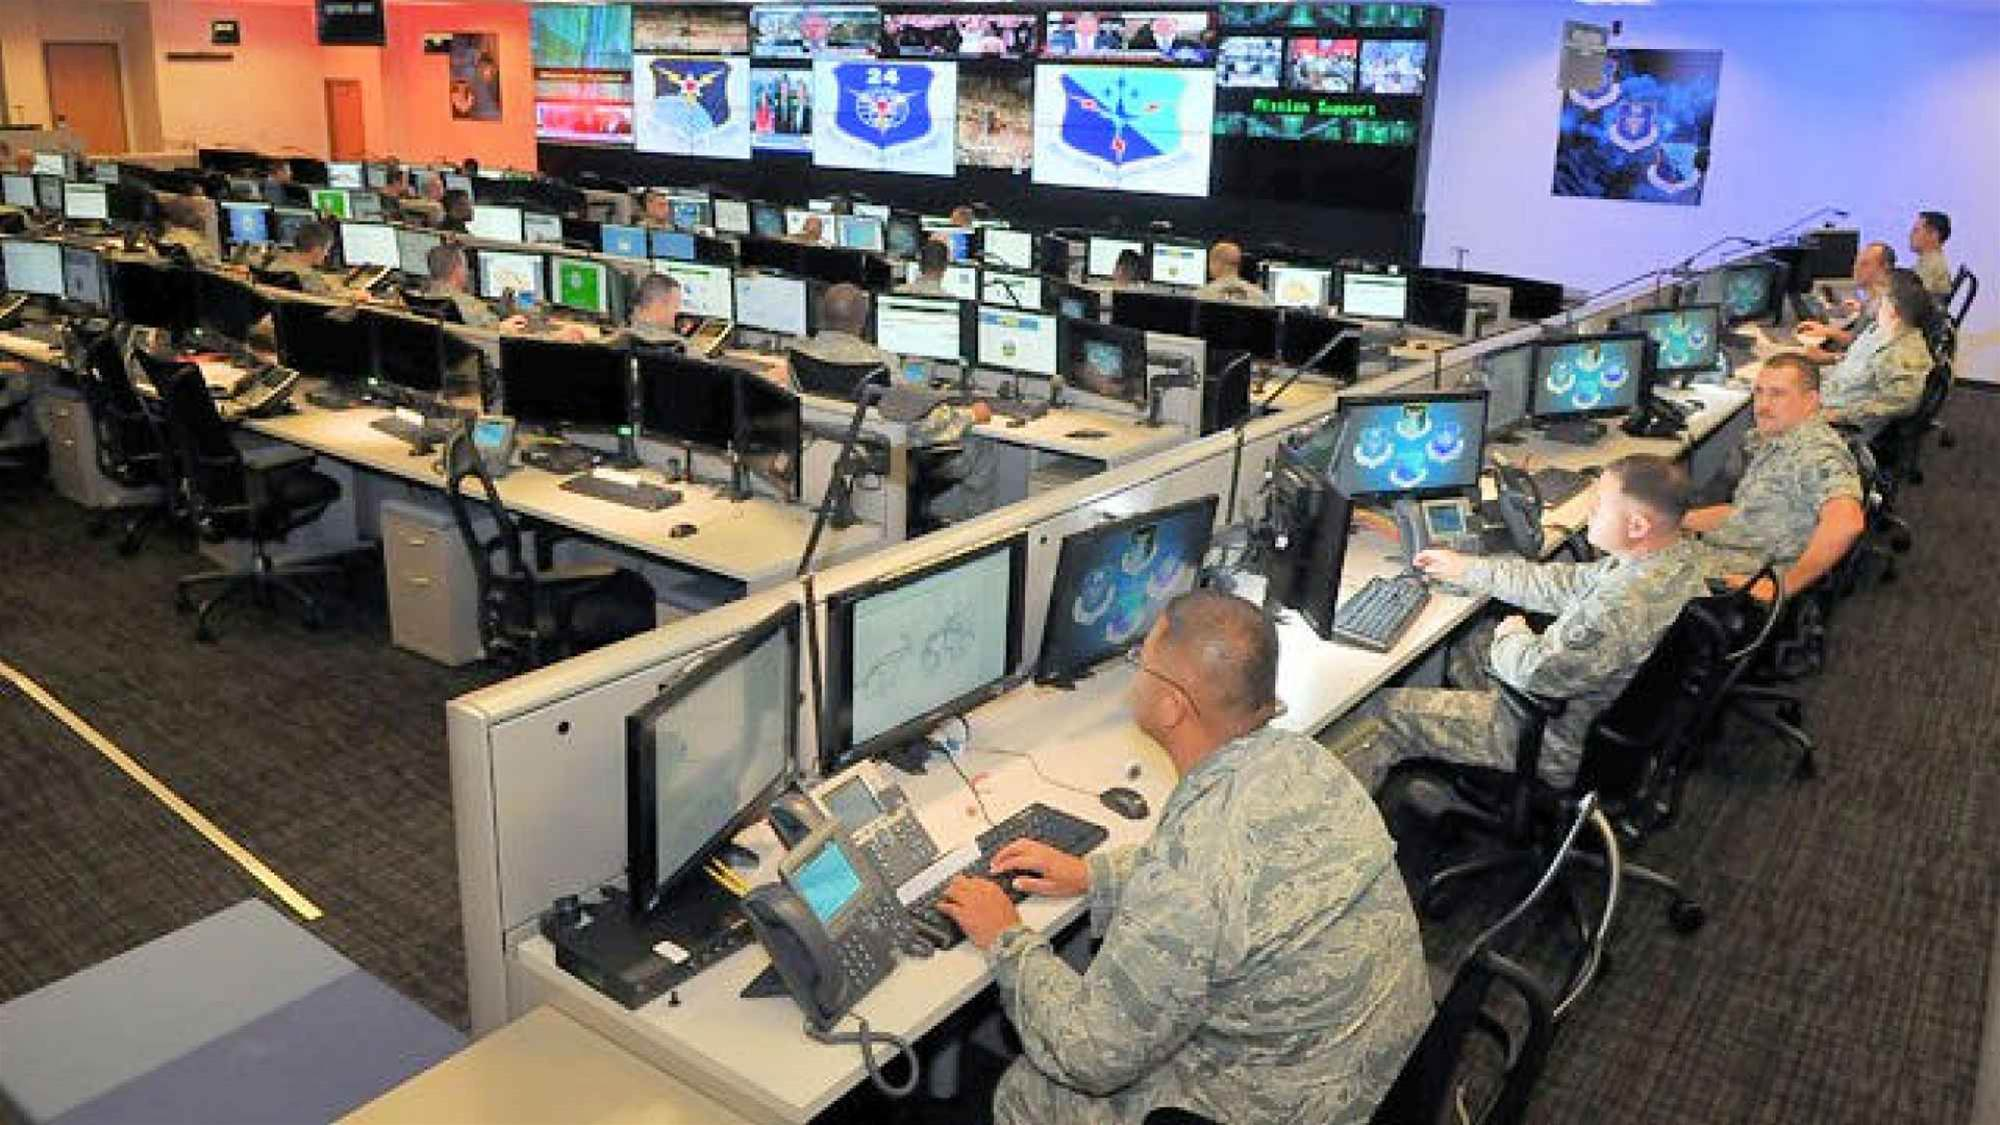 Was The Sony Hack Actually An Act Of Cyberwar?